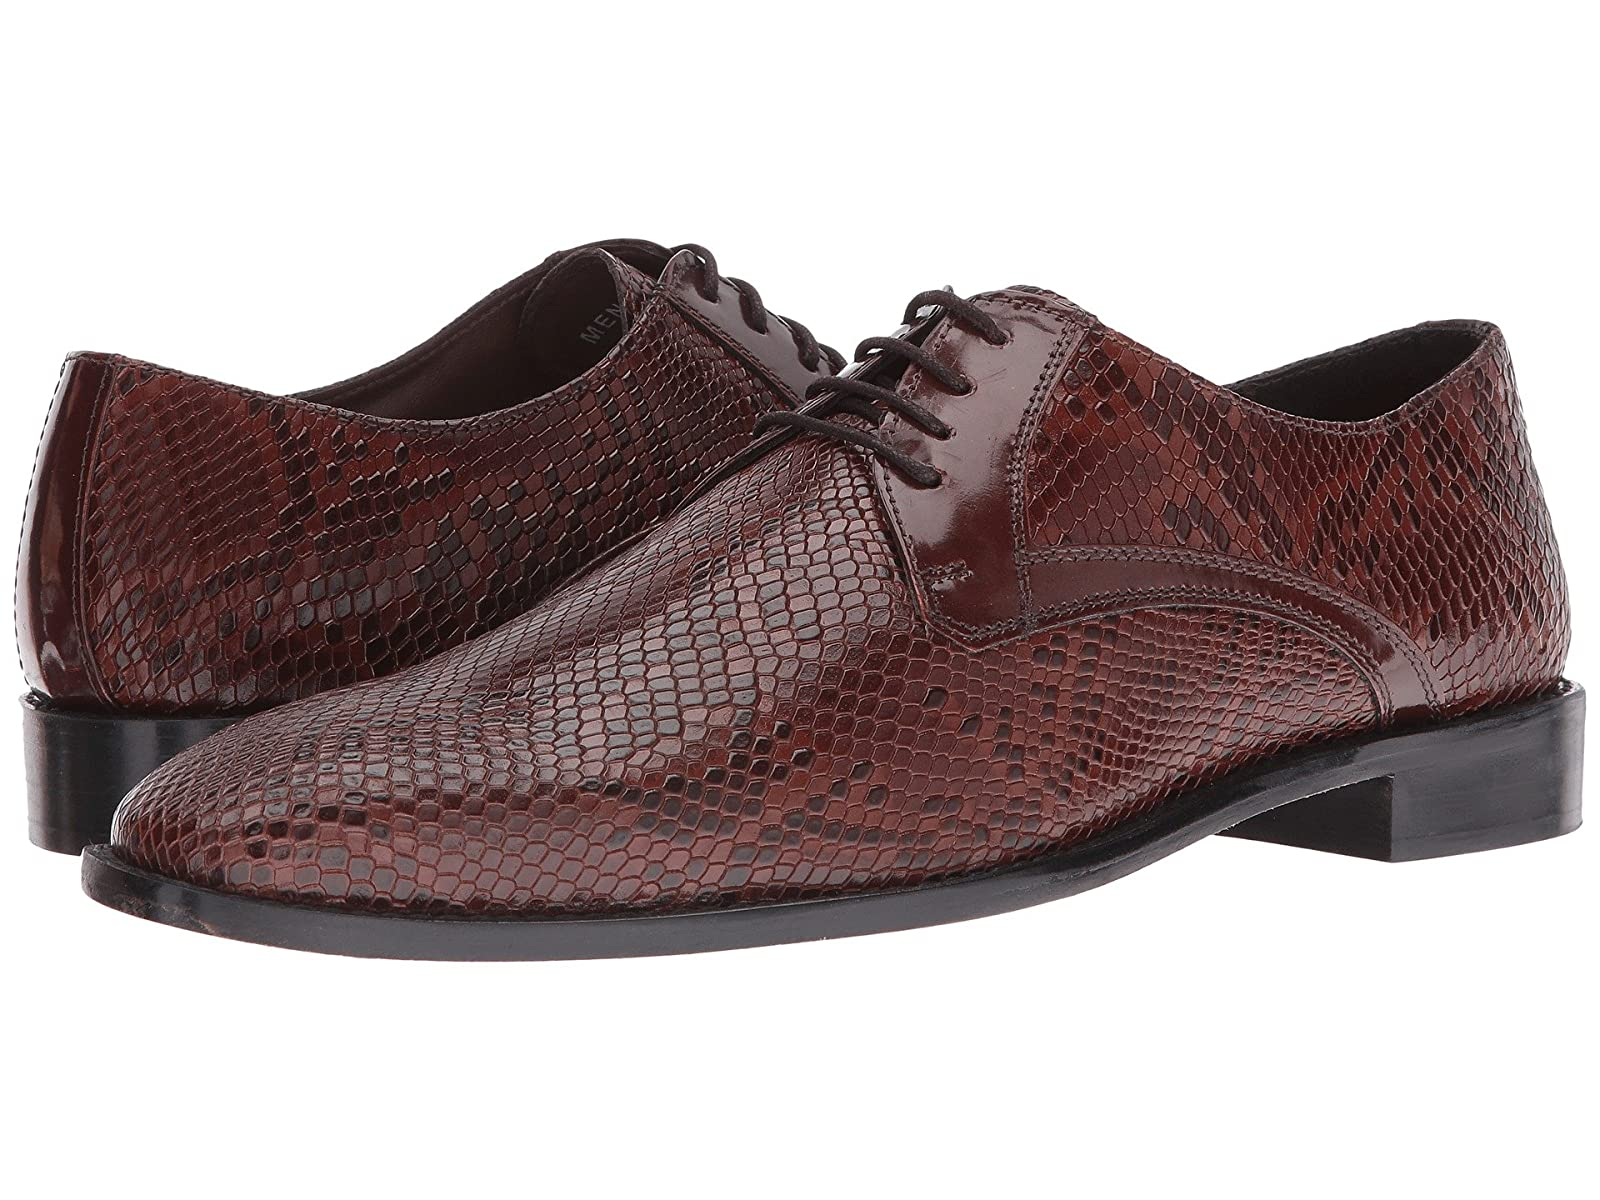 Stacy Adams Rinaldi Leather Sole Plain Toe OxfordAtmospheric grades have affordable shoes